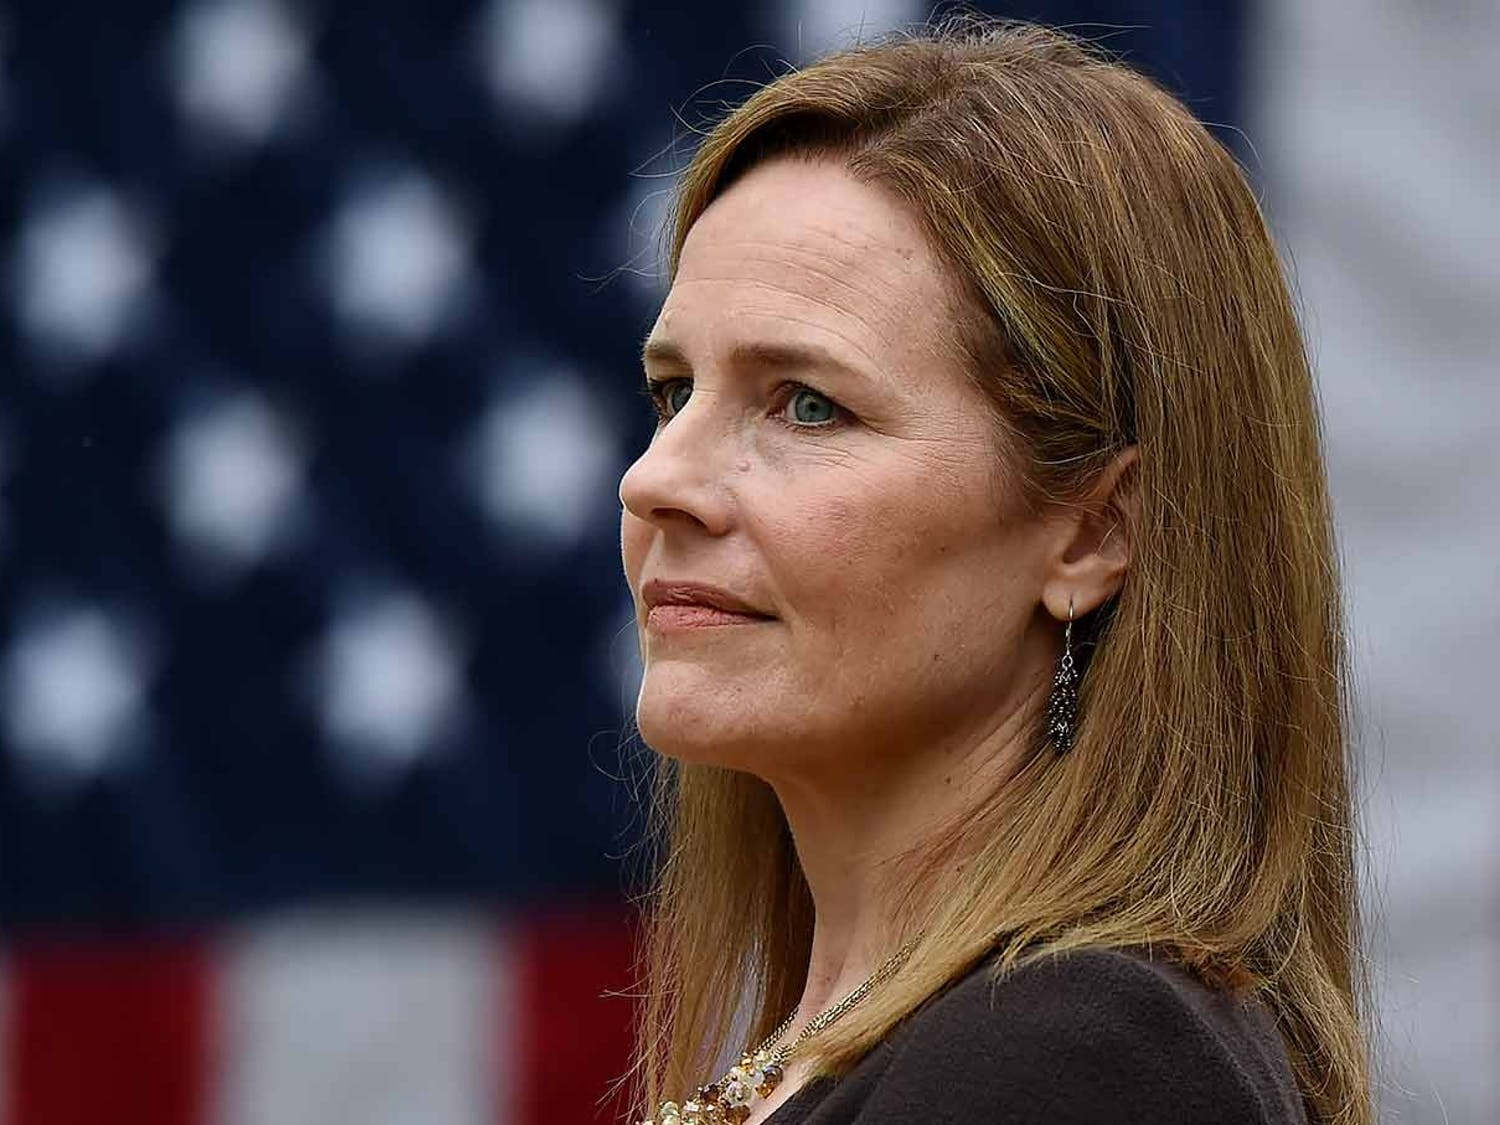 Amy Coney Barrett officially replacing Ruth Bader Ginsburg in the Supreme Court, where conservatives lead a 6-3 majority, may have horrific effects on women's rights.